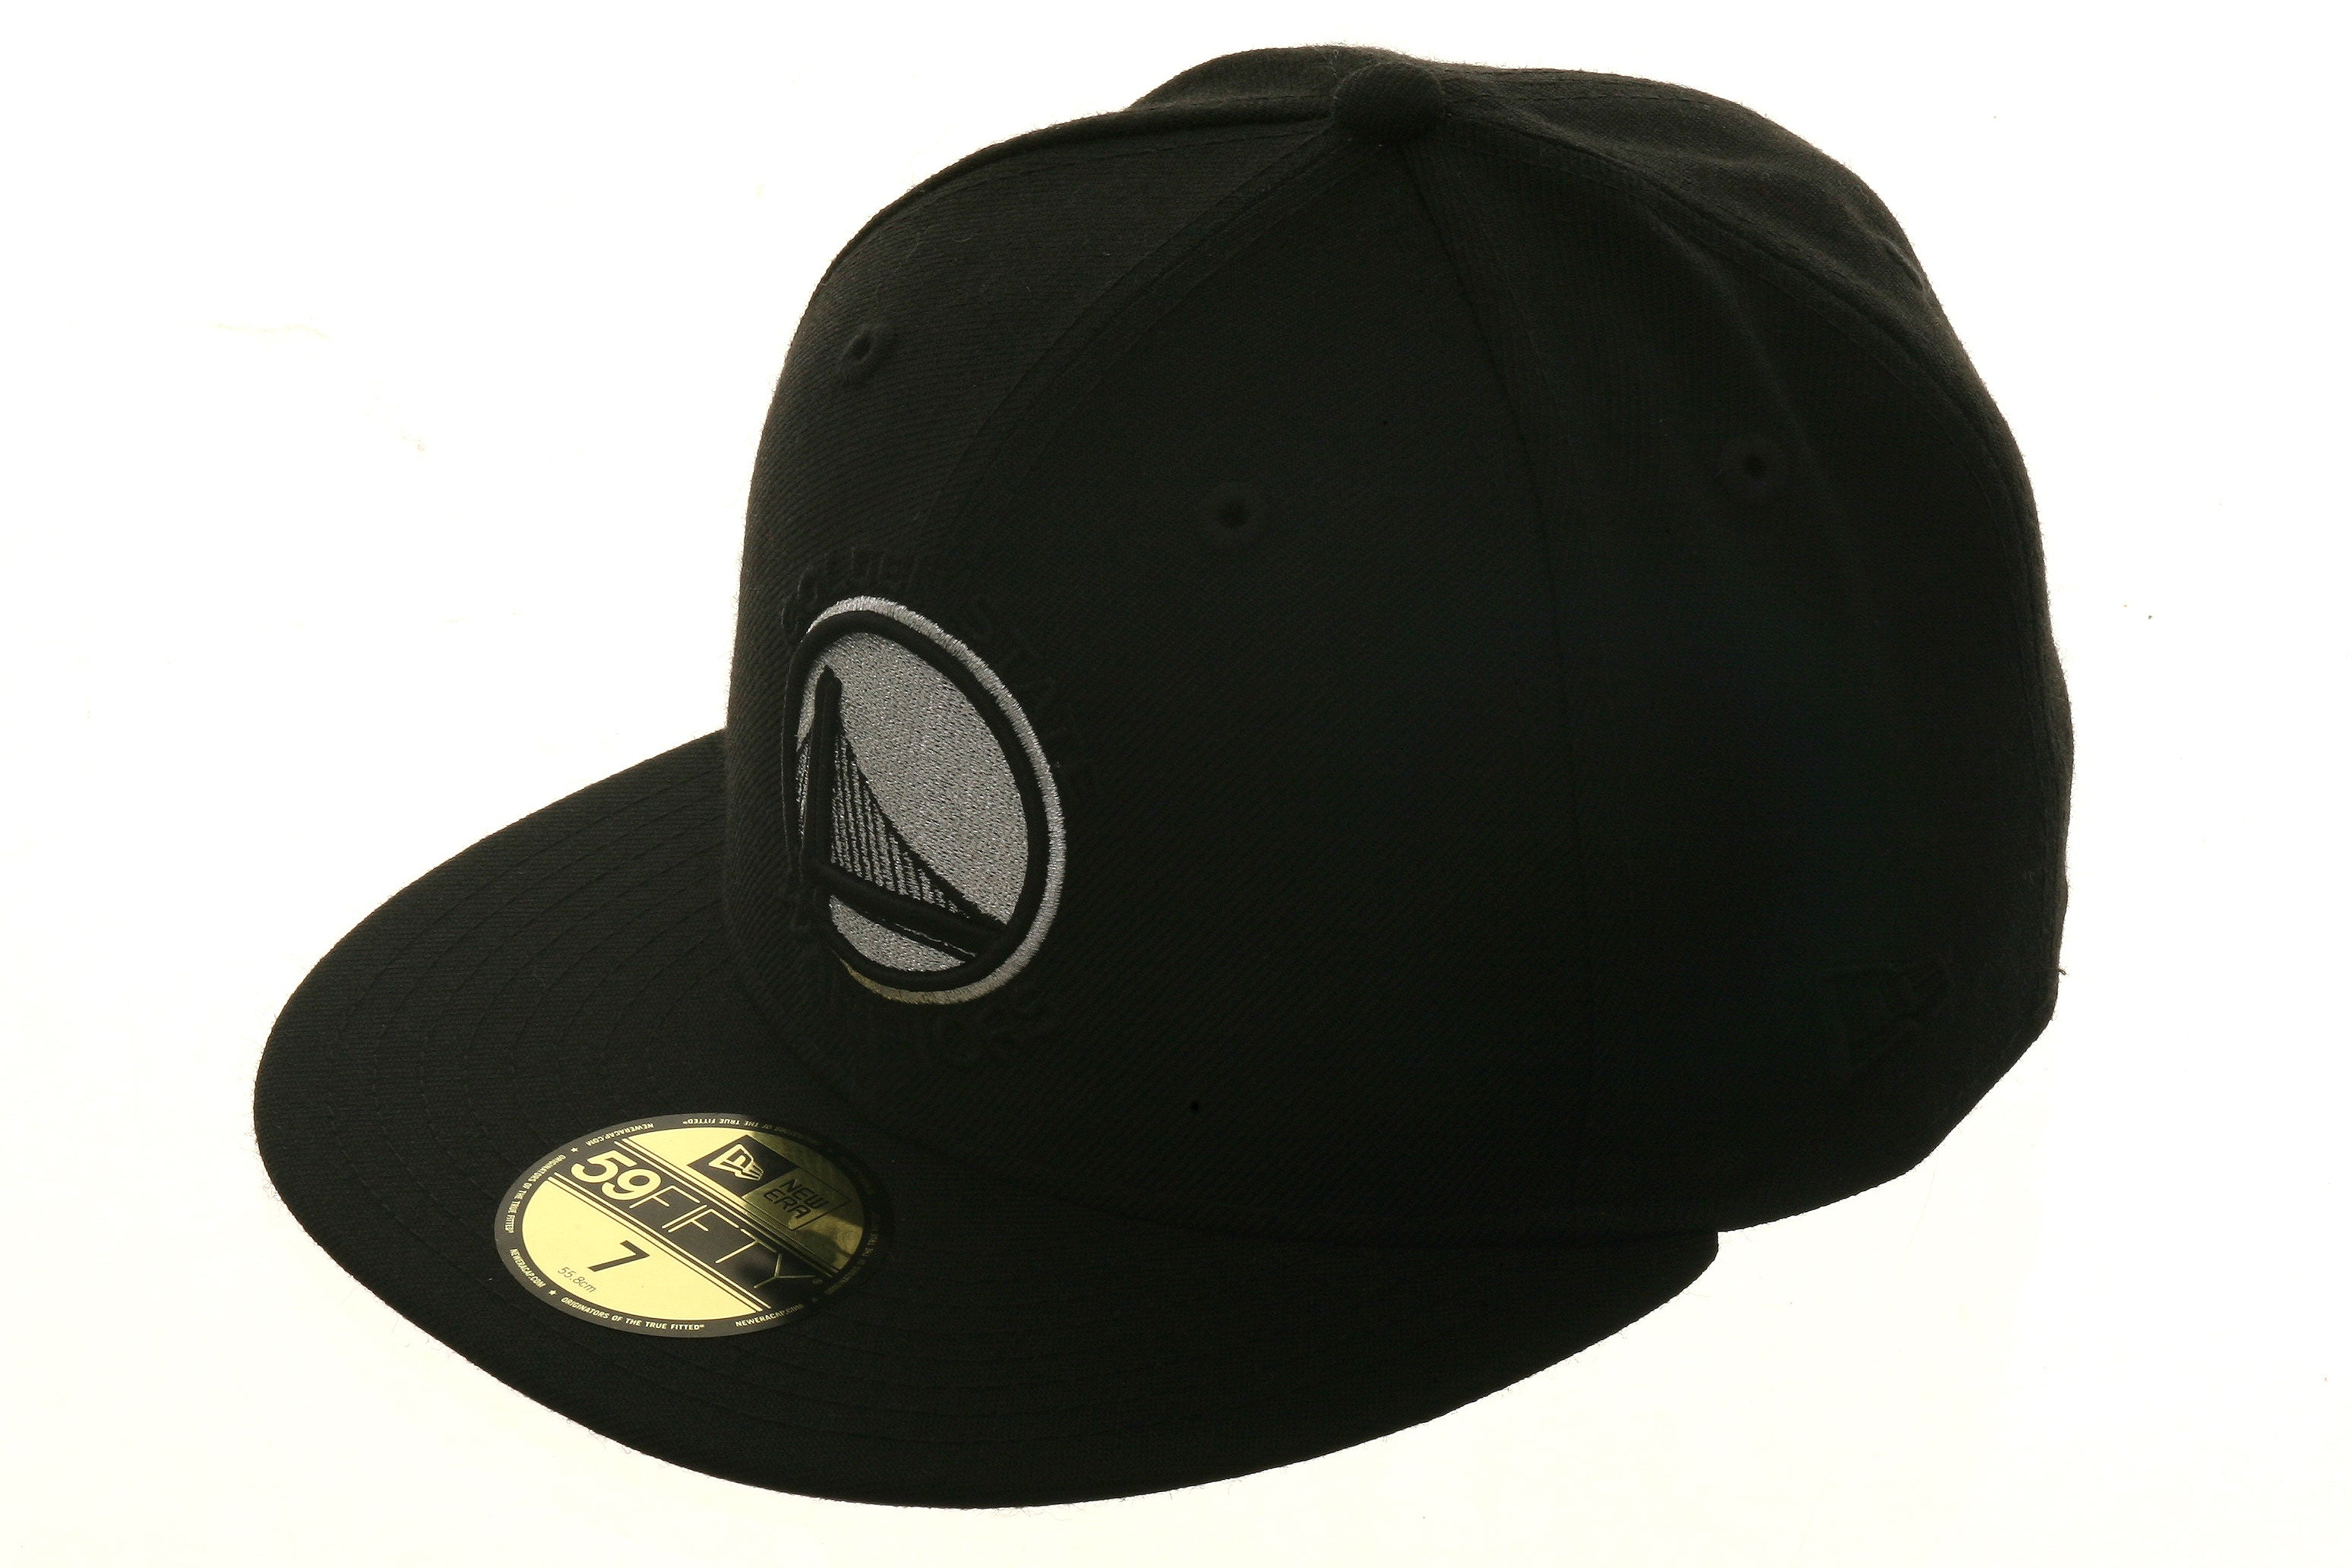 Exclusive New Era 59Fifty Golden State Warriors Alternate Hat - Black, Metallic Silver